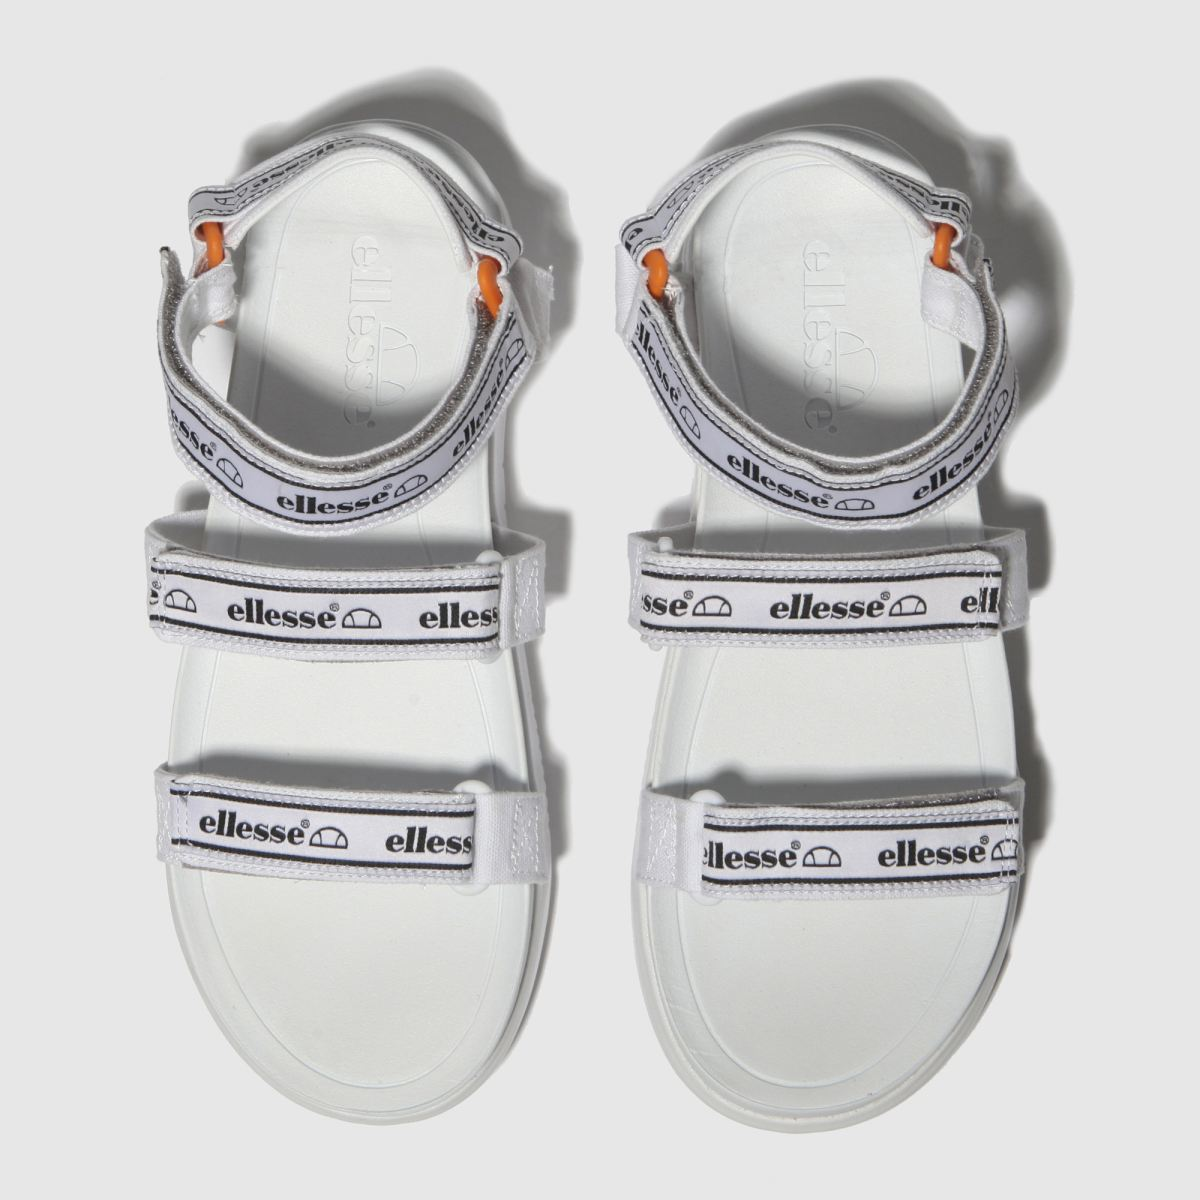 Ellesse White & Black Denso Sandals